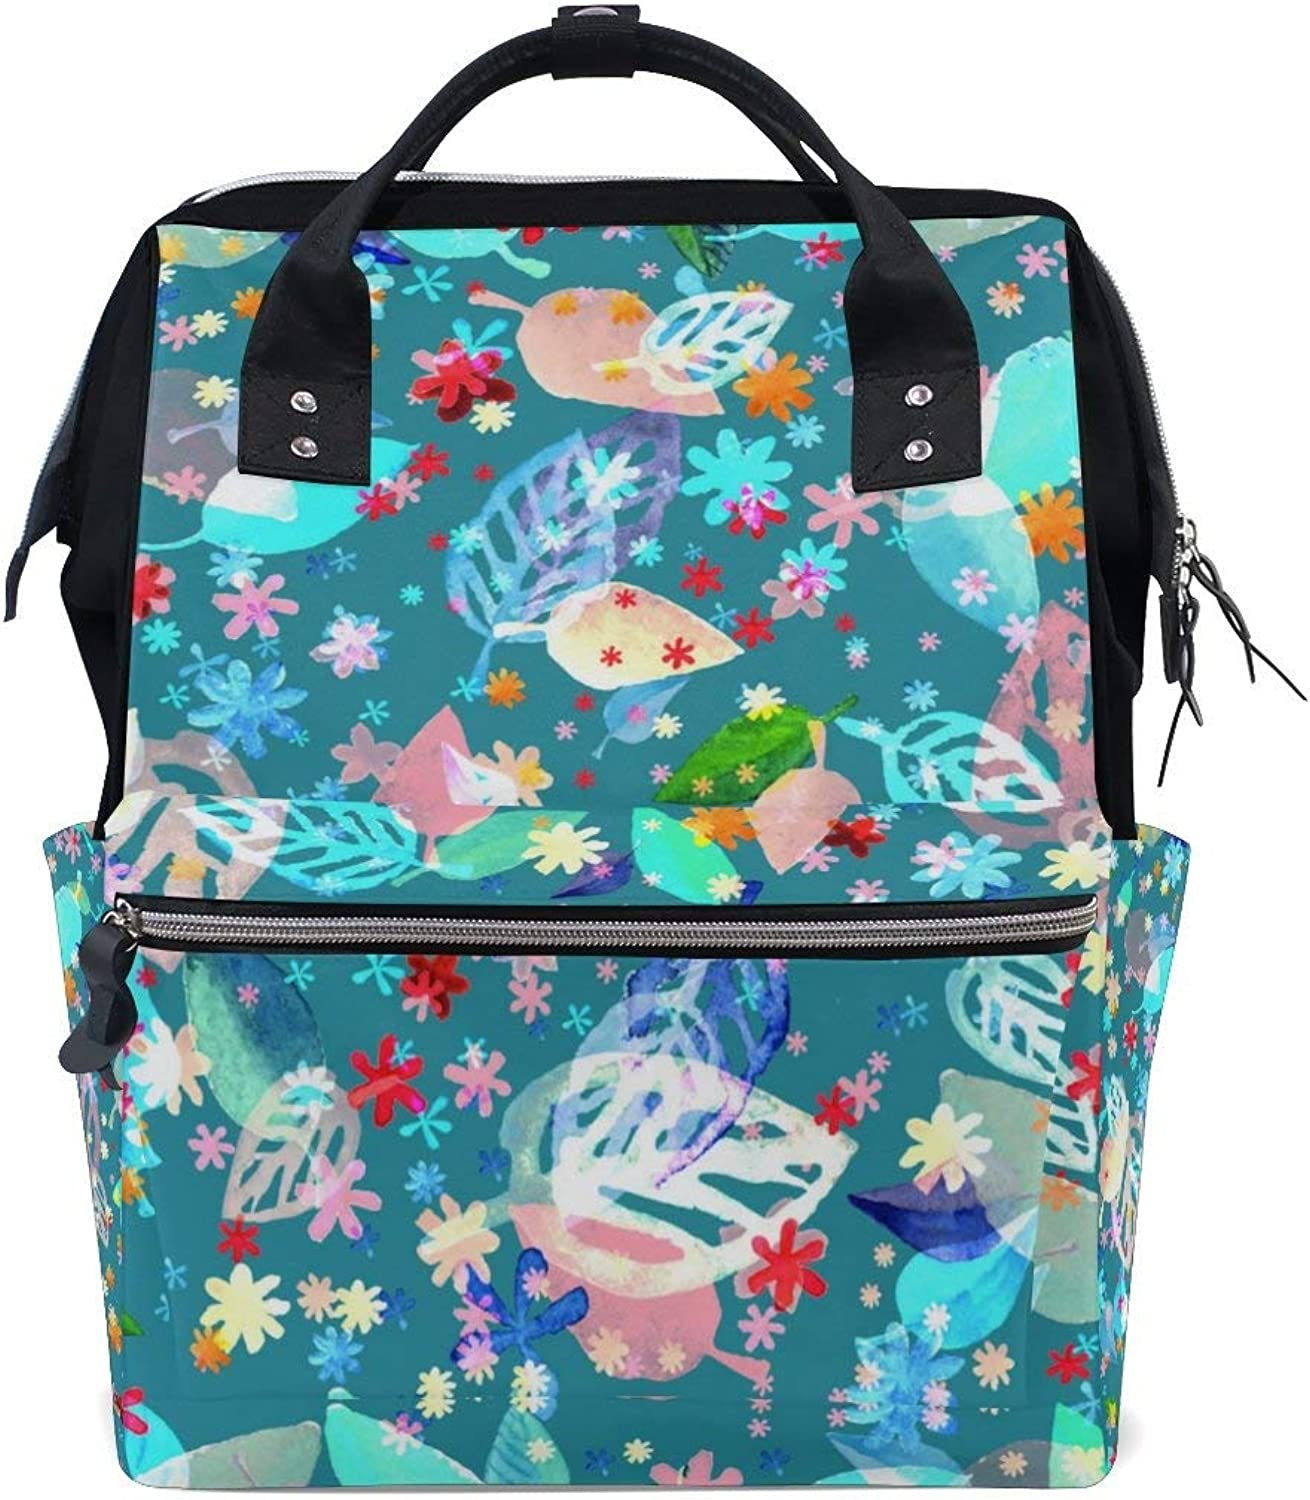 bluee Foliage Pattern Fashion Diaper Bags Mummy Backpack Multi Functions Large Capacity Nappy Bag Nursing Bag for Baby Care for Traveling